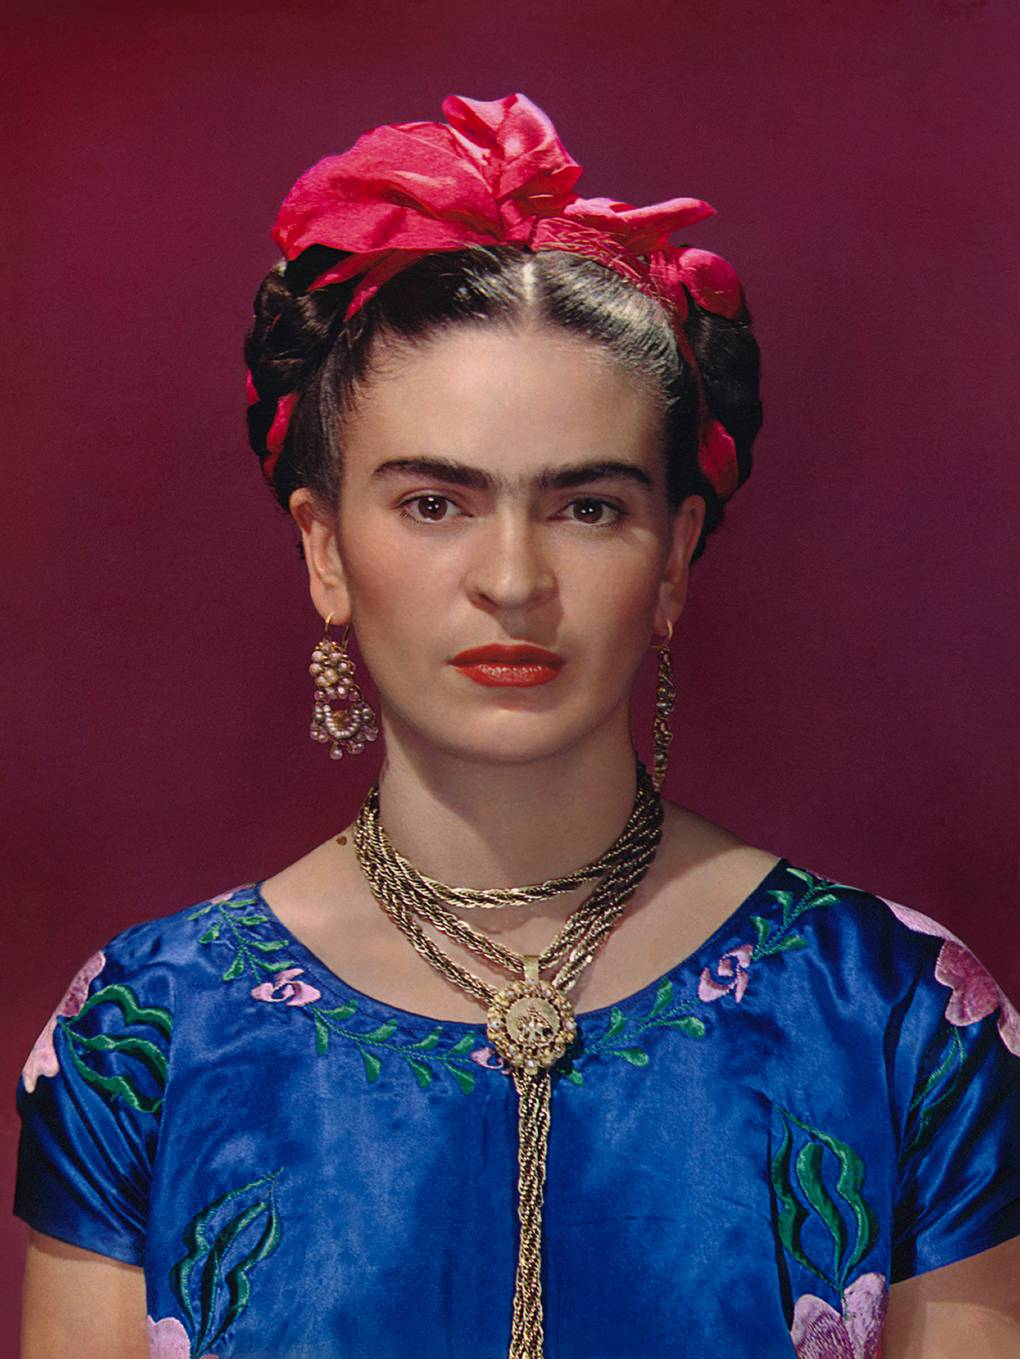 Frida Kahlo exhibition at the Victoria and Albert Museum London